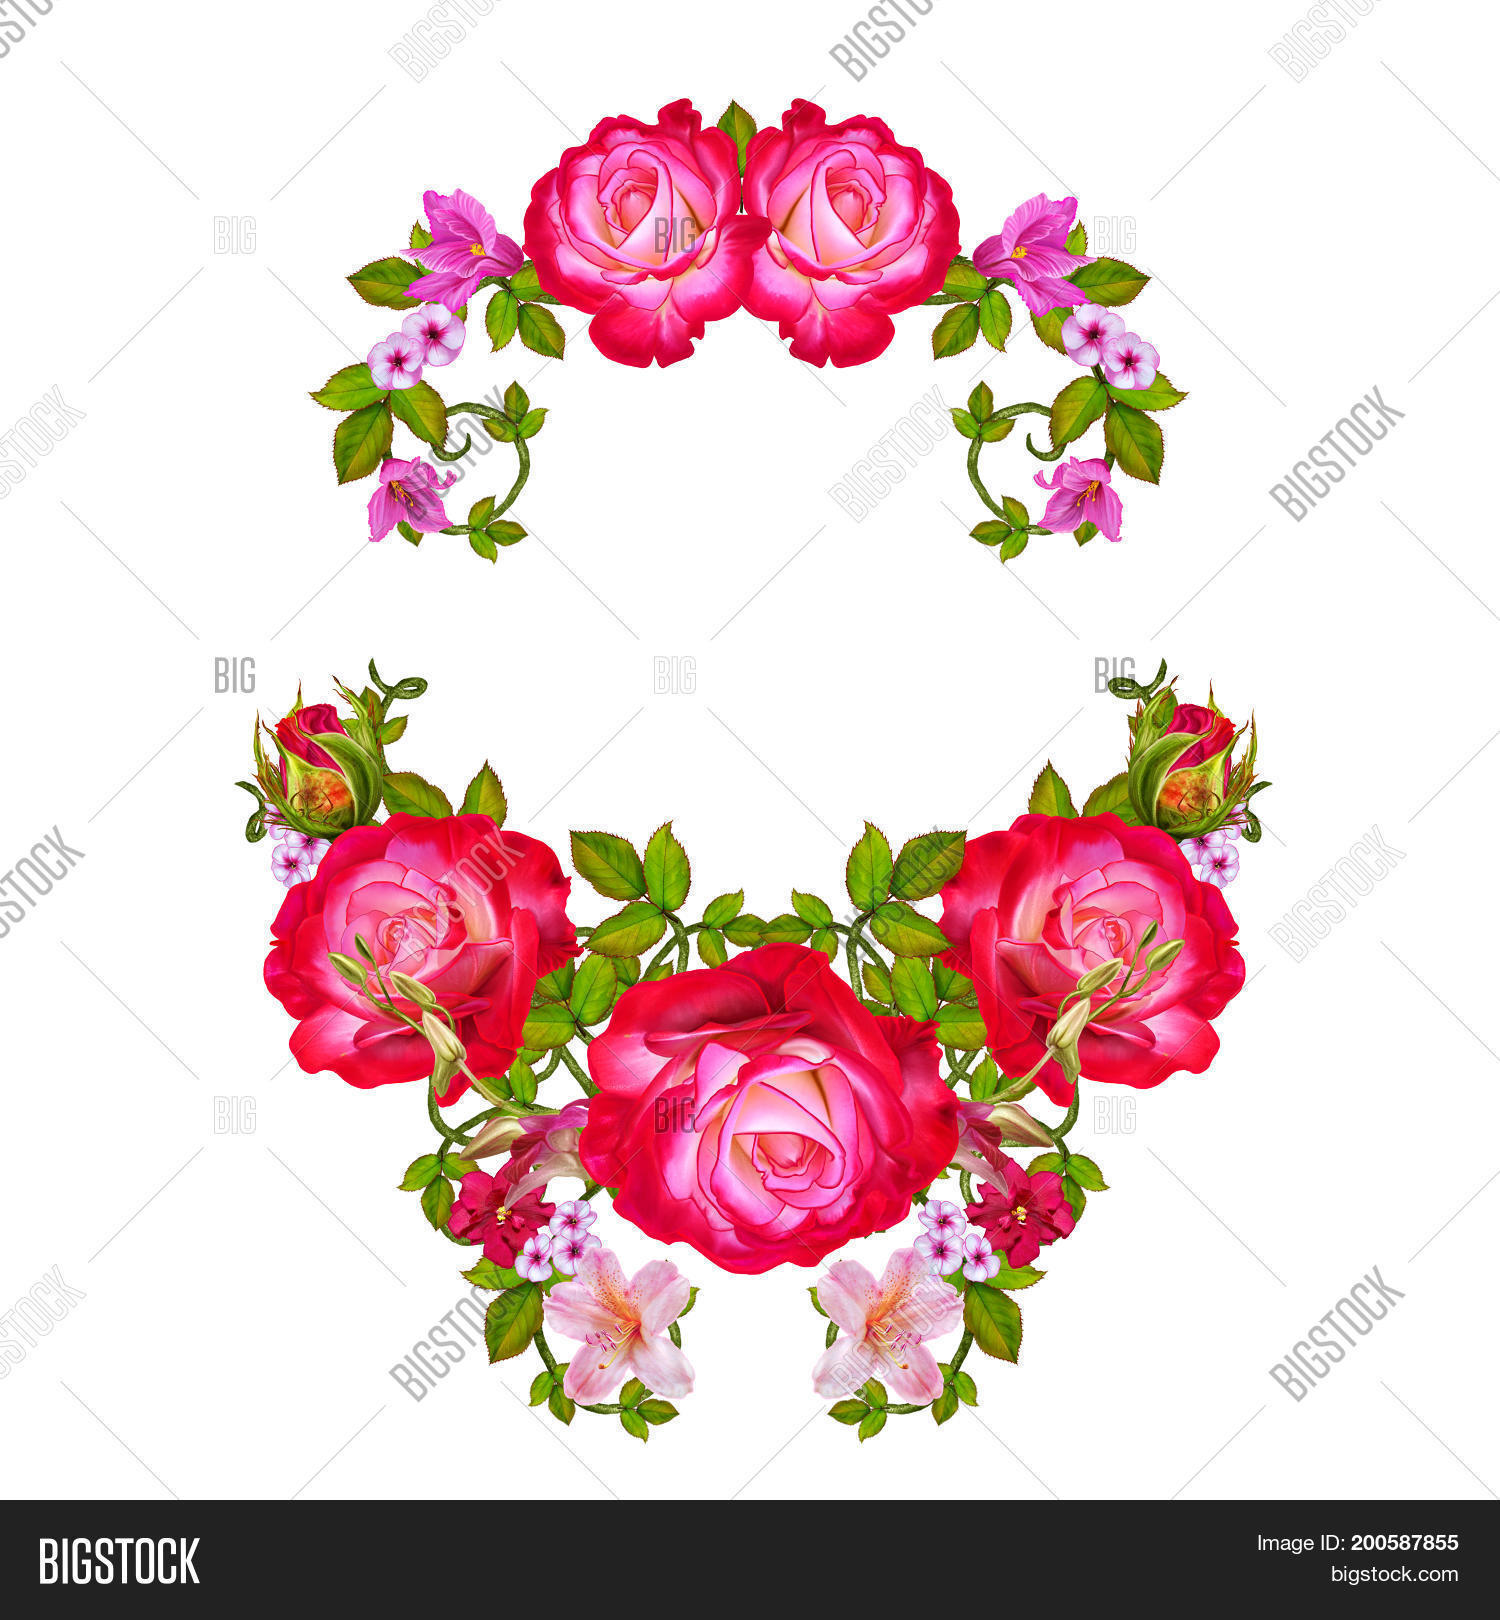 Flower Arrangement Image Photo Free Trial Bigstock